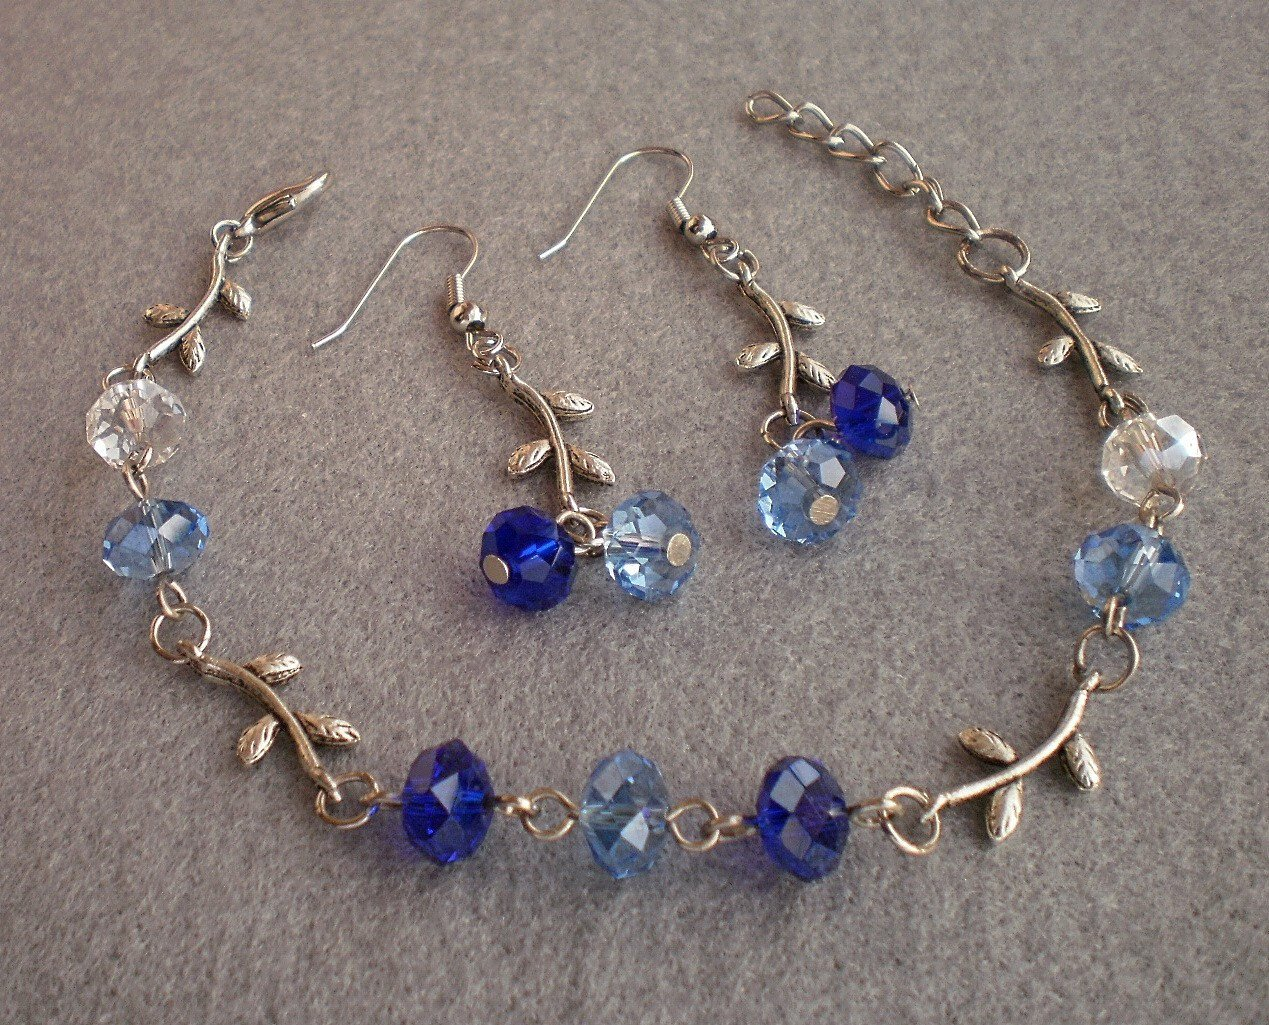 Sapphire Blue /Dark Cobalt Crystal Beaded Bracelet & Earrings Handmade Gift Jewelry Flower Leaft